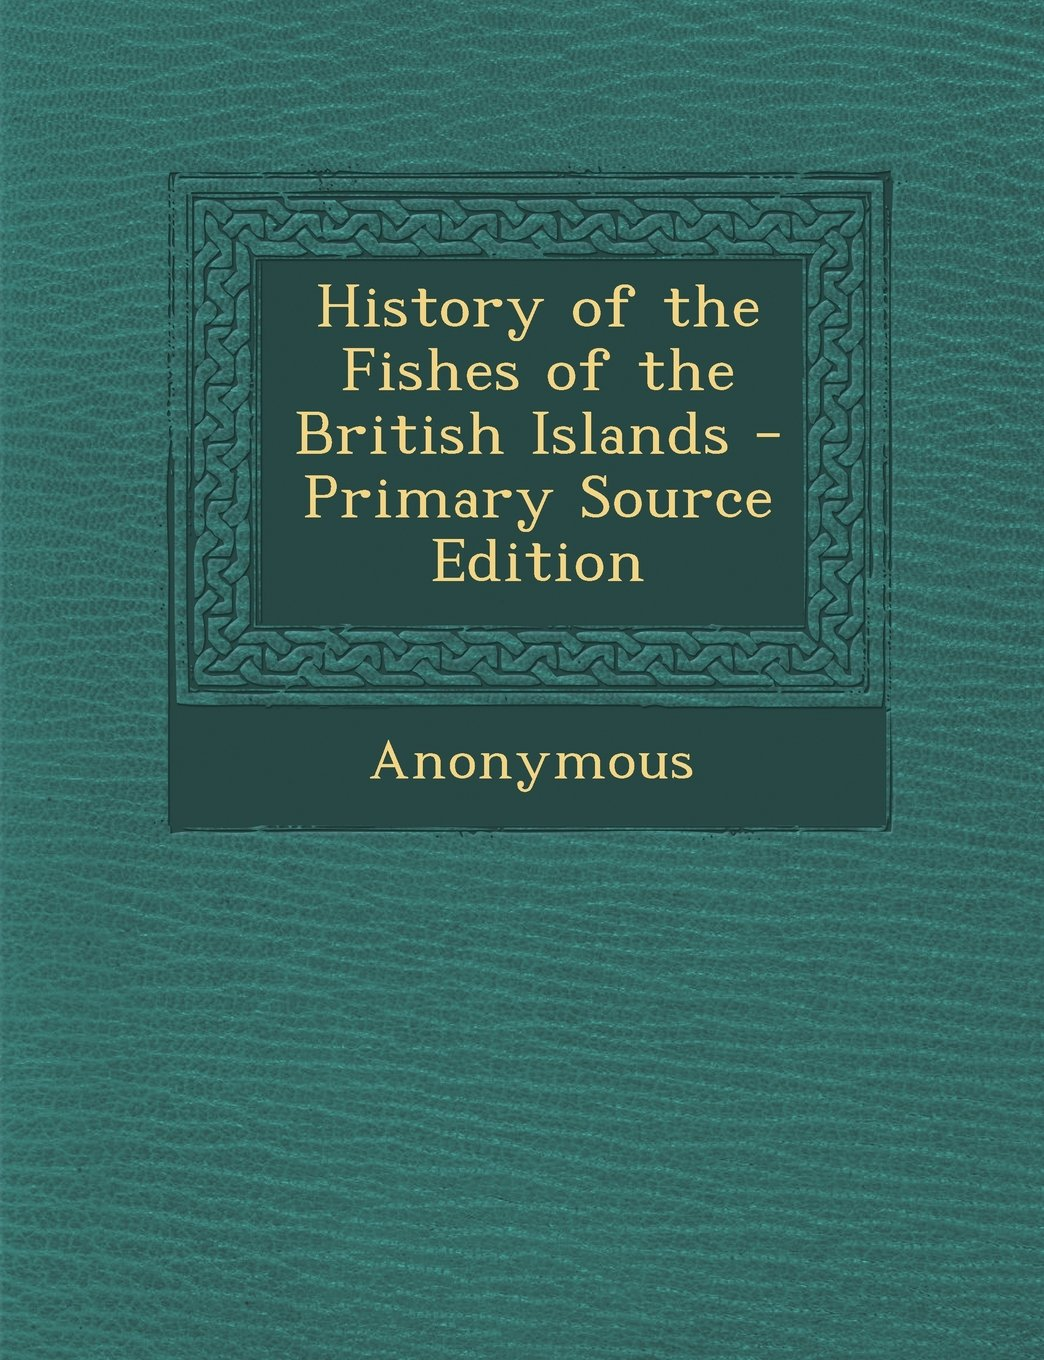 Download History of the Fishes of the British Islands - Primary Source Edition pdf